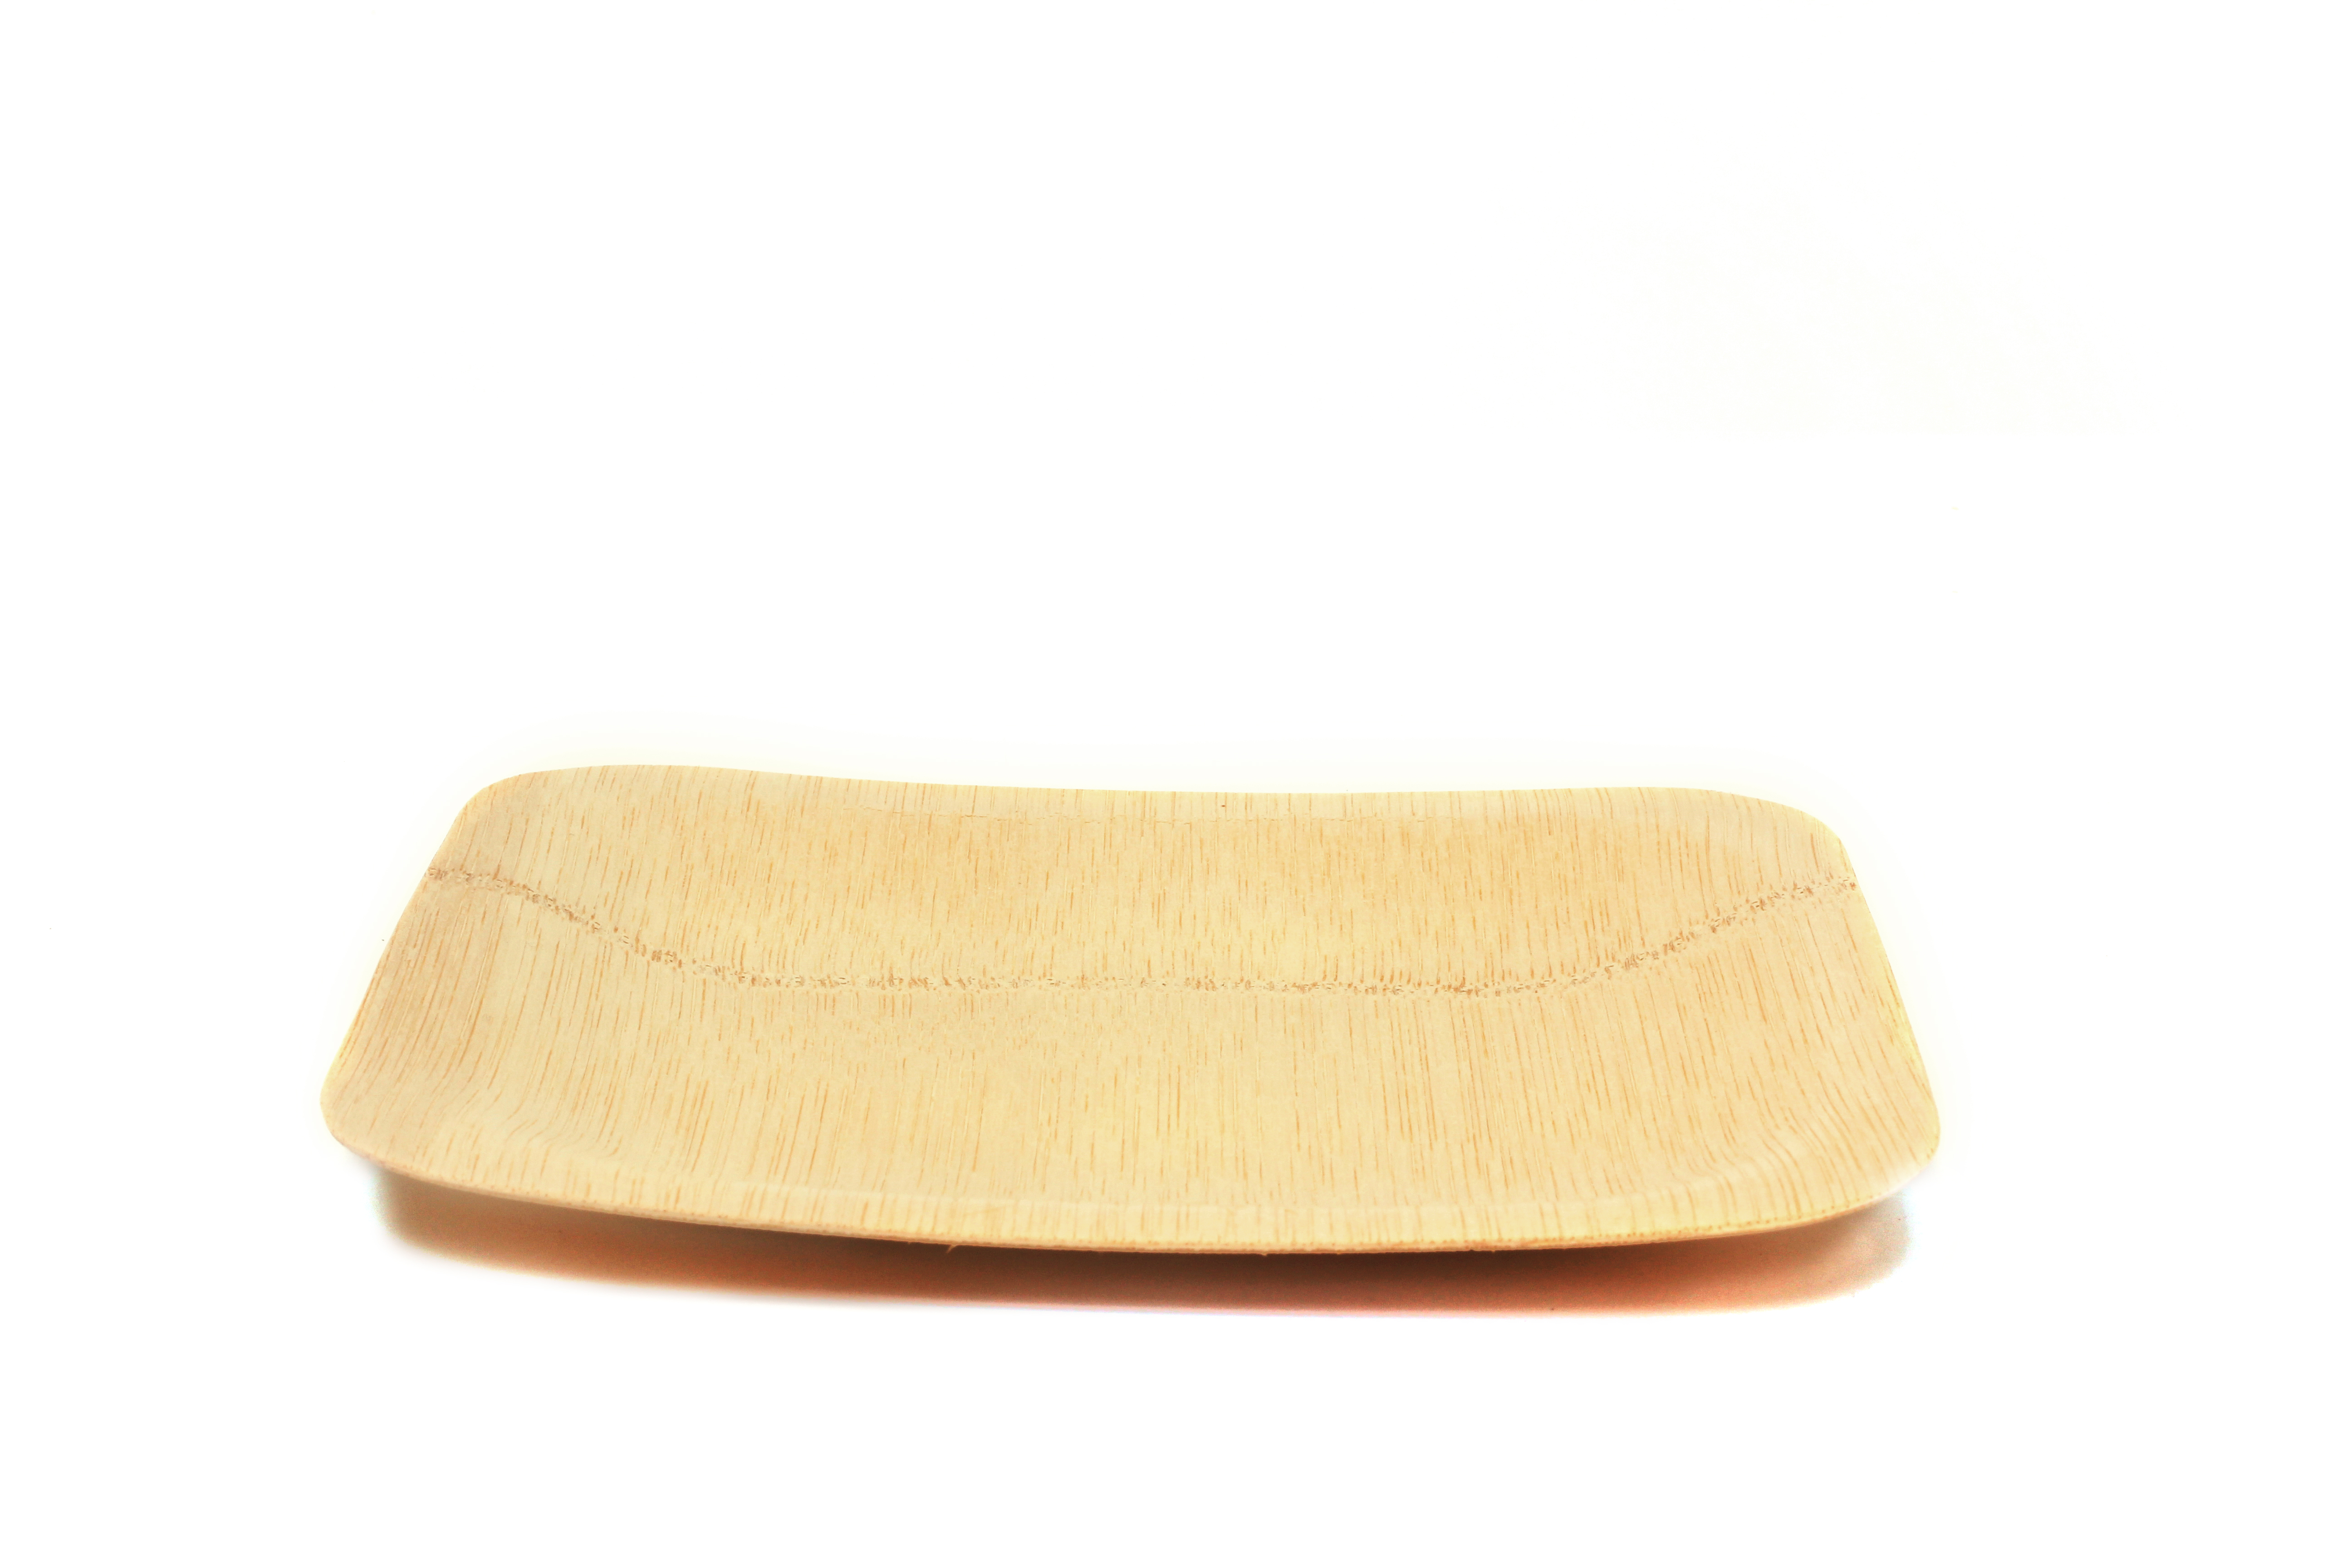 Cool bamboo plates with Core bamboo plates for serveware ideas